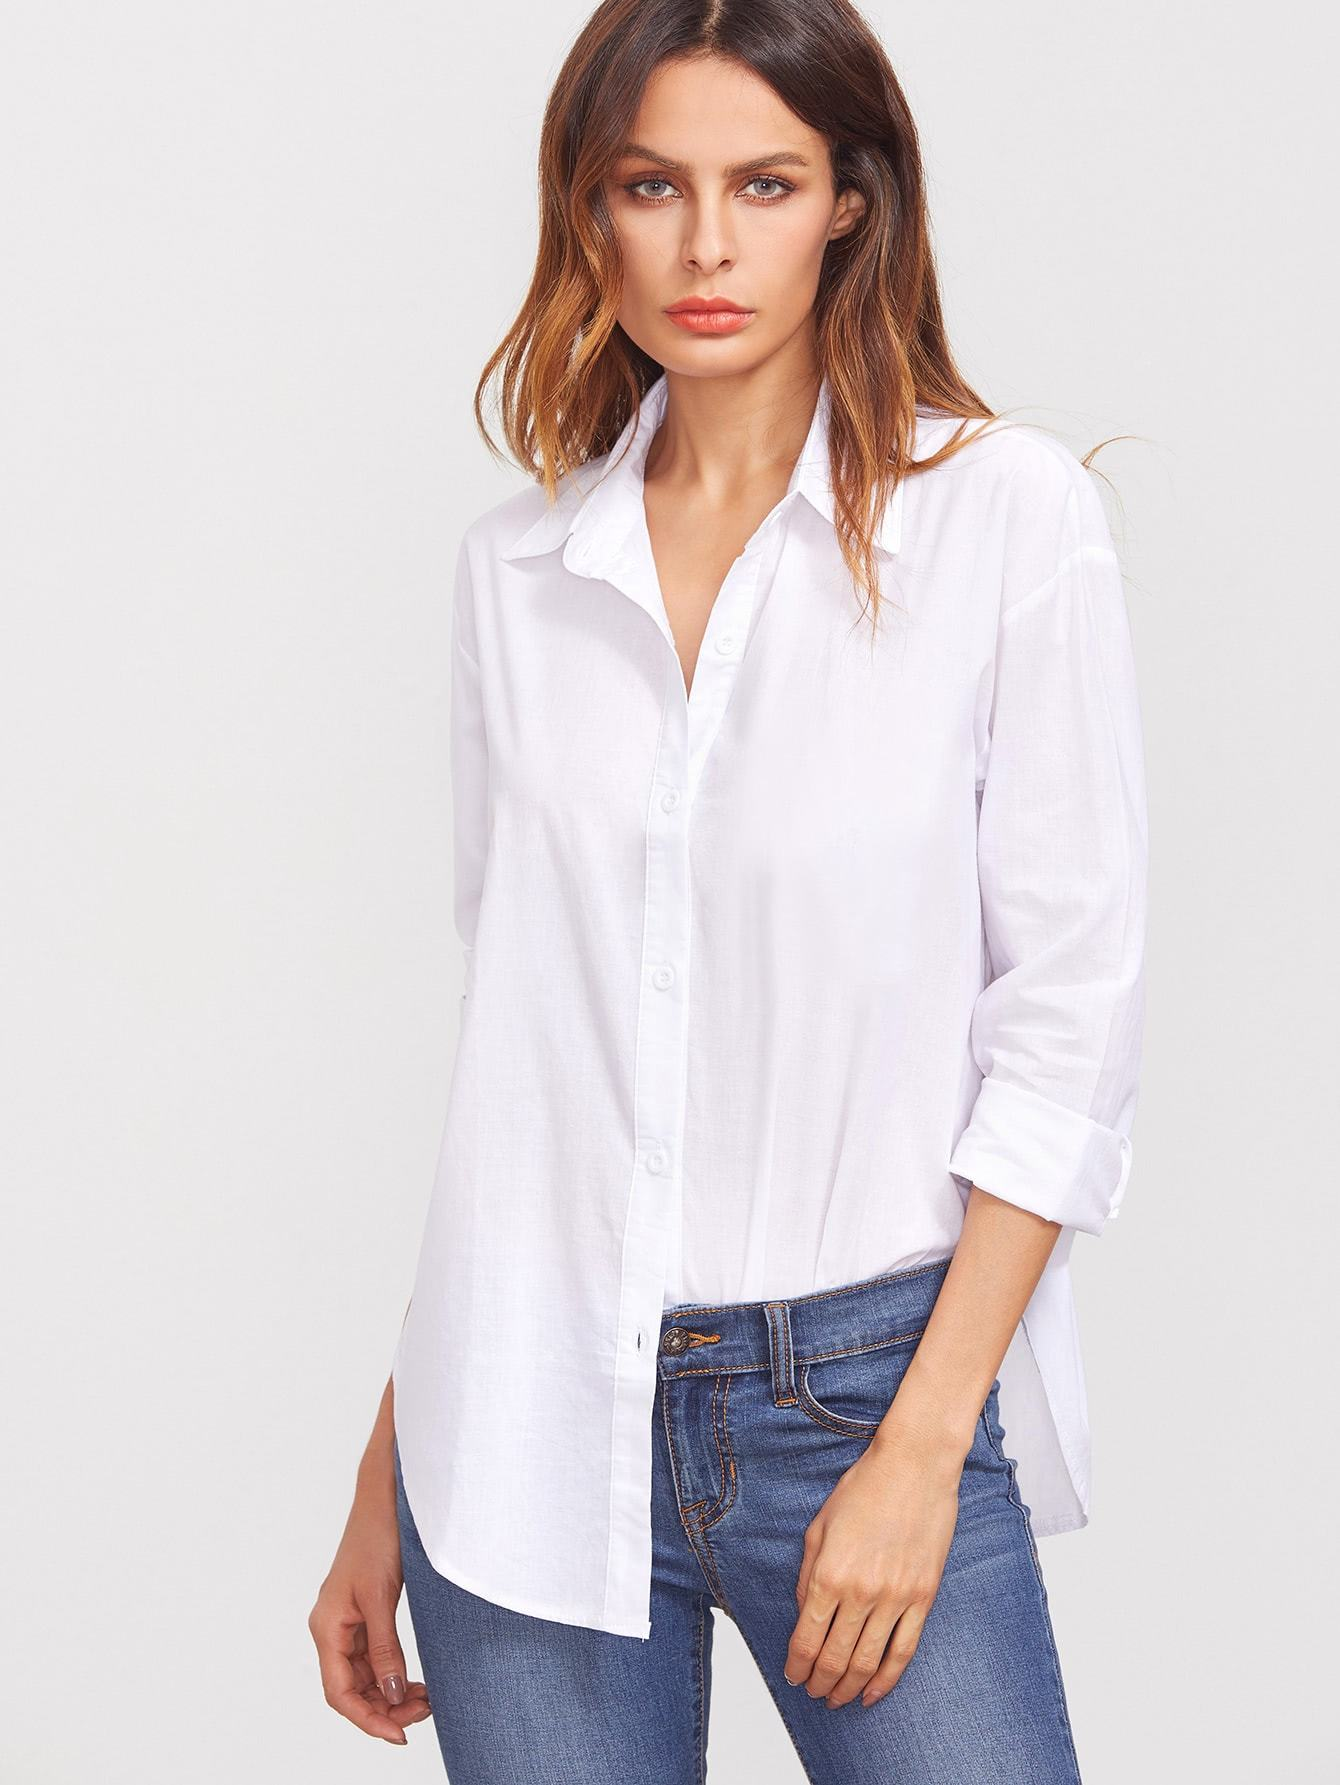 White Curved Hem Blouse - LoveSylvester